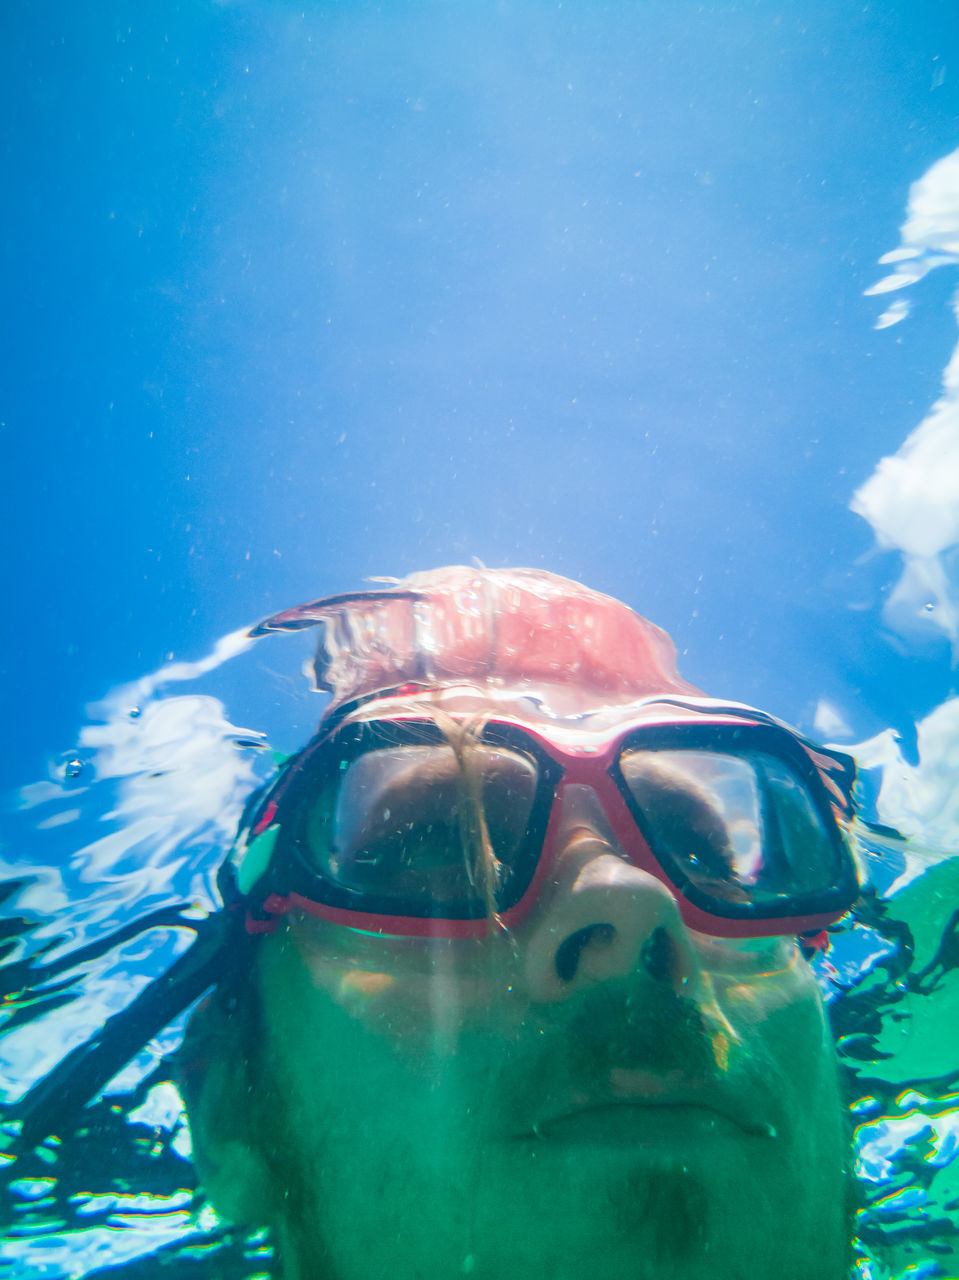 underwater, sea, water, swimming, eyewear, portrait, swimming goggles, leisure activity, nature, real people, headshot, sport, one person, front view, swimwear, blue, men, lifestyles, undersea, swimming pool, outdoors, snorkeling